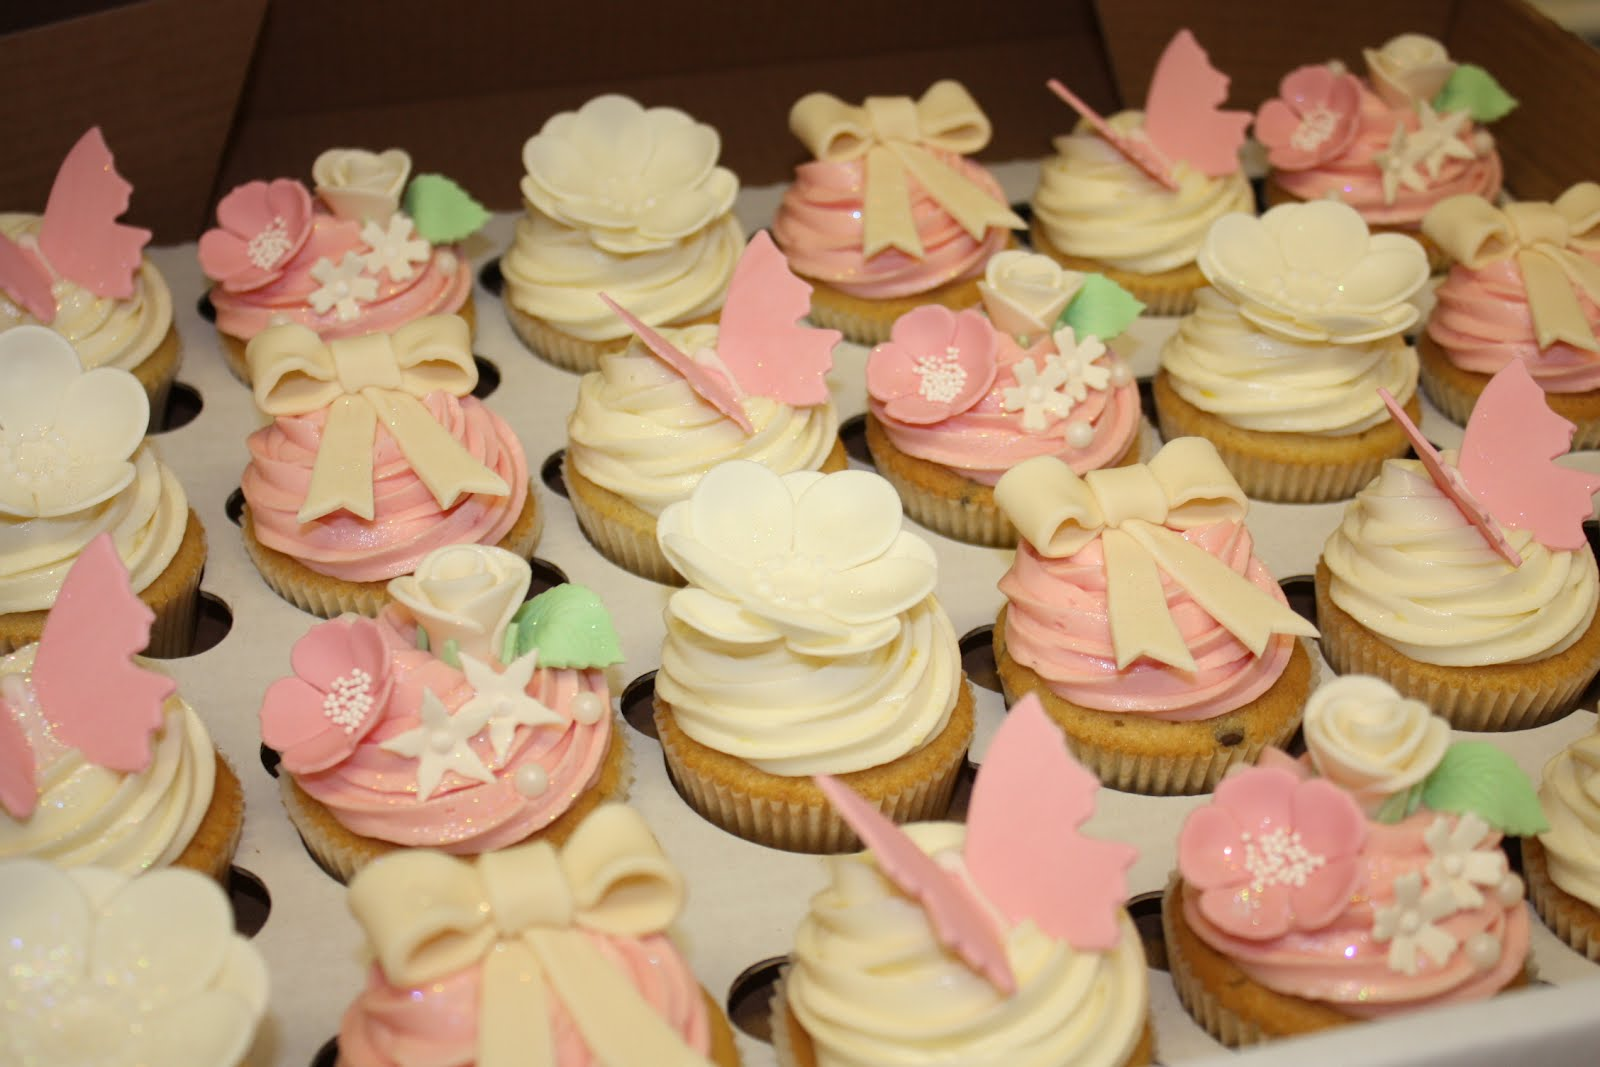 The Little House of Cupcakes February 2012